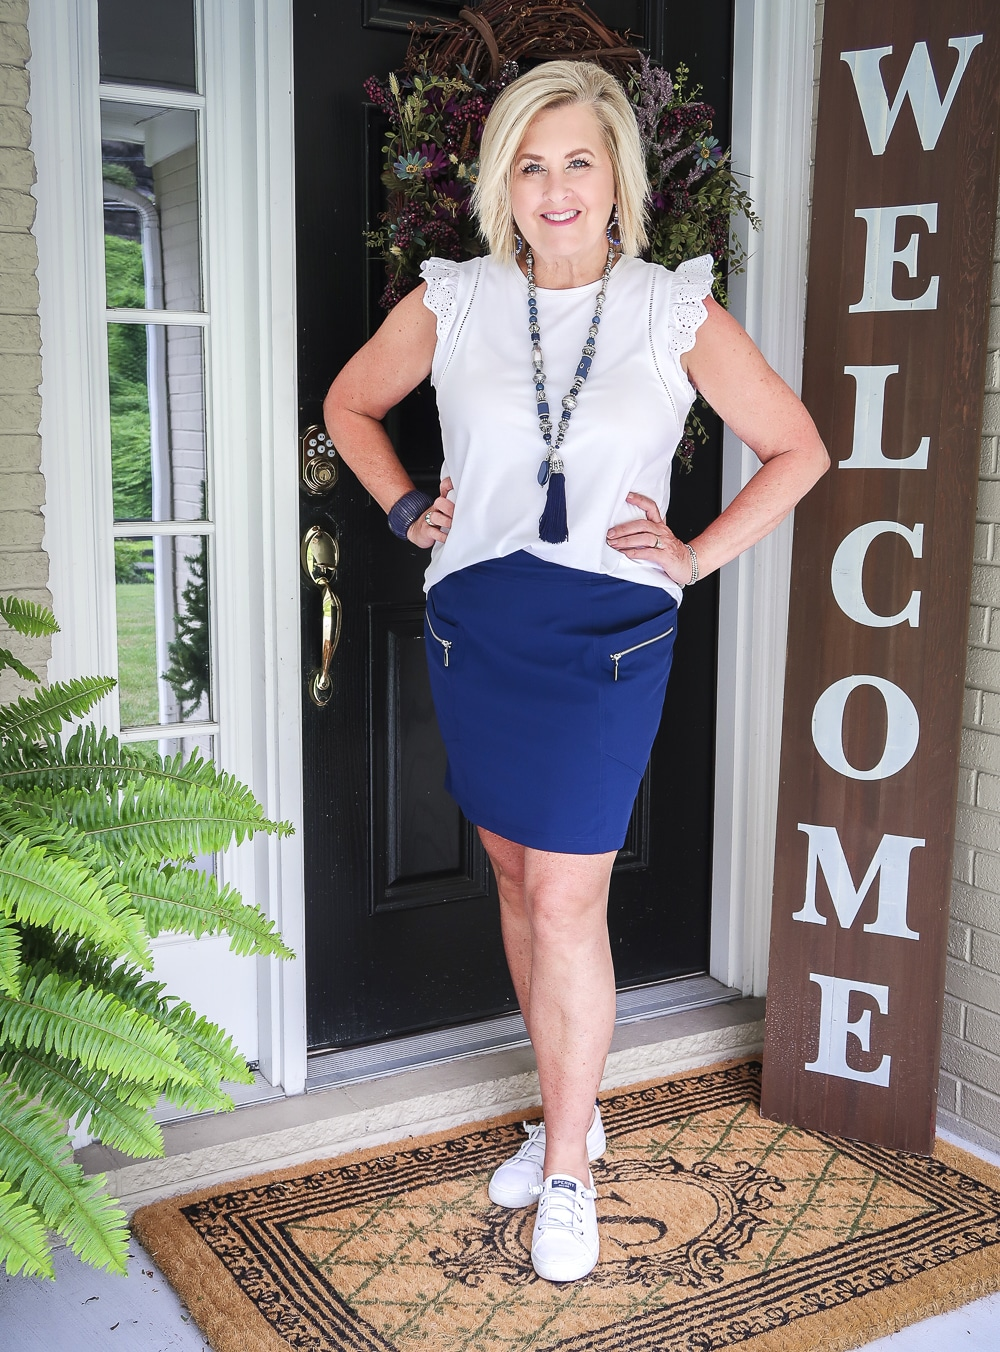 Fashion Blogger 50 Is Not Old is wearing an eyelet flutter sleeve top with a navy skort with zippers and a pair of white Sperry no-tie sneakers